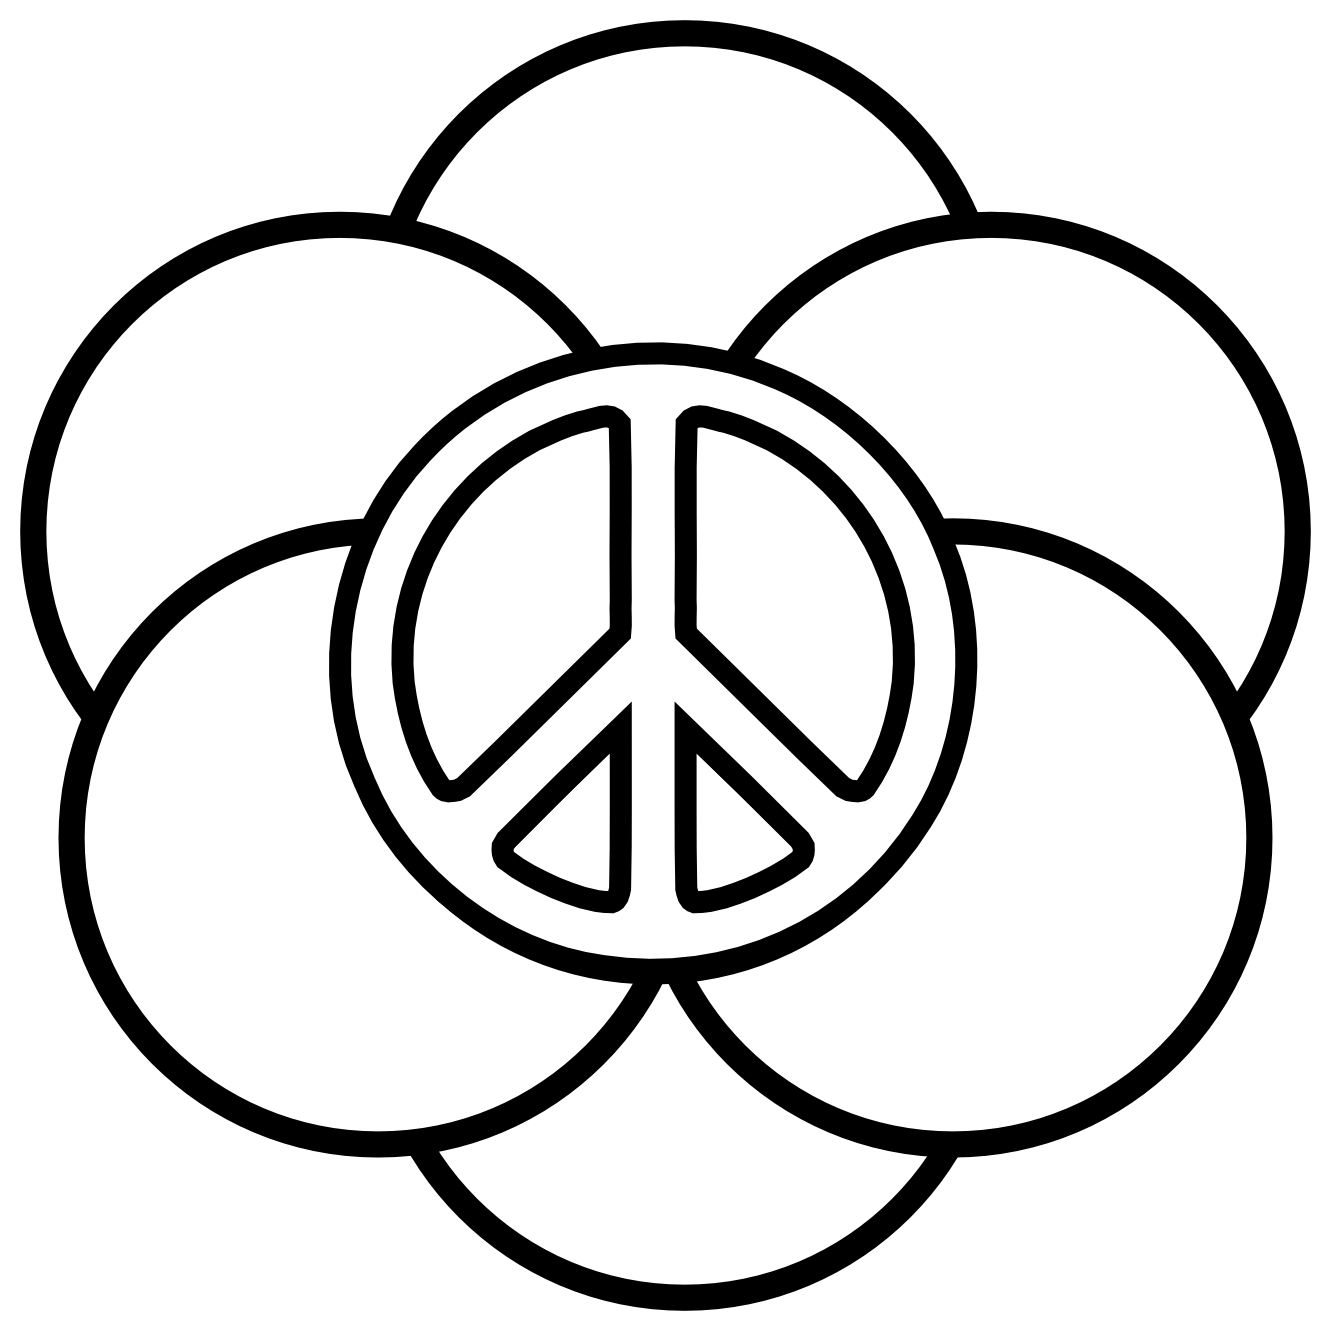 peacesign coloring pages - photo#10